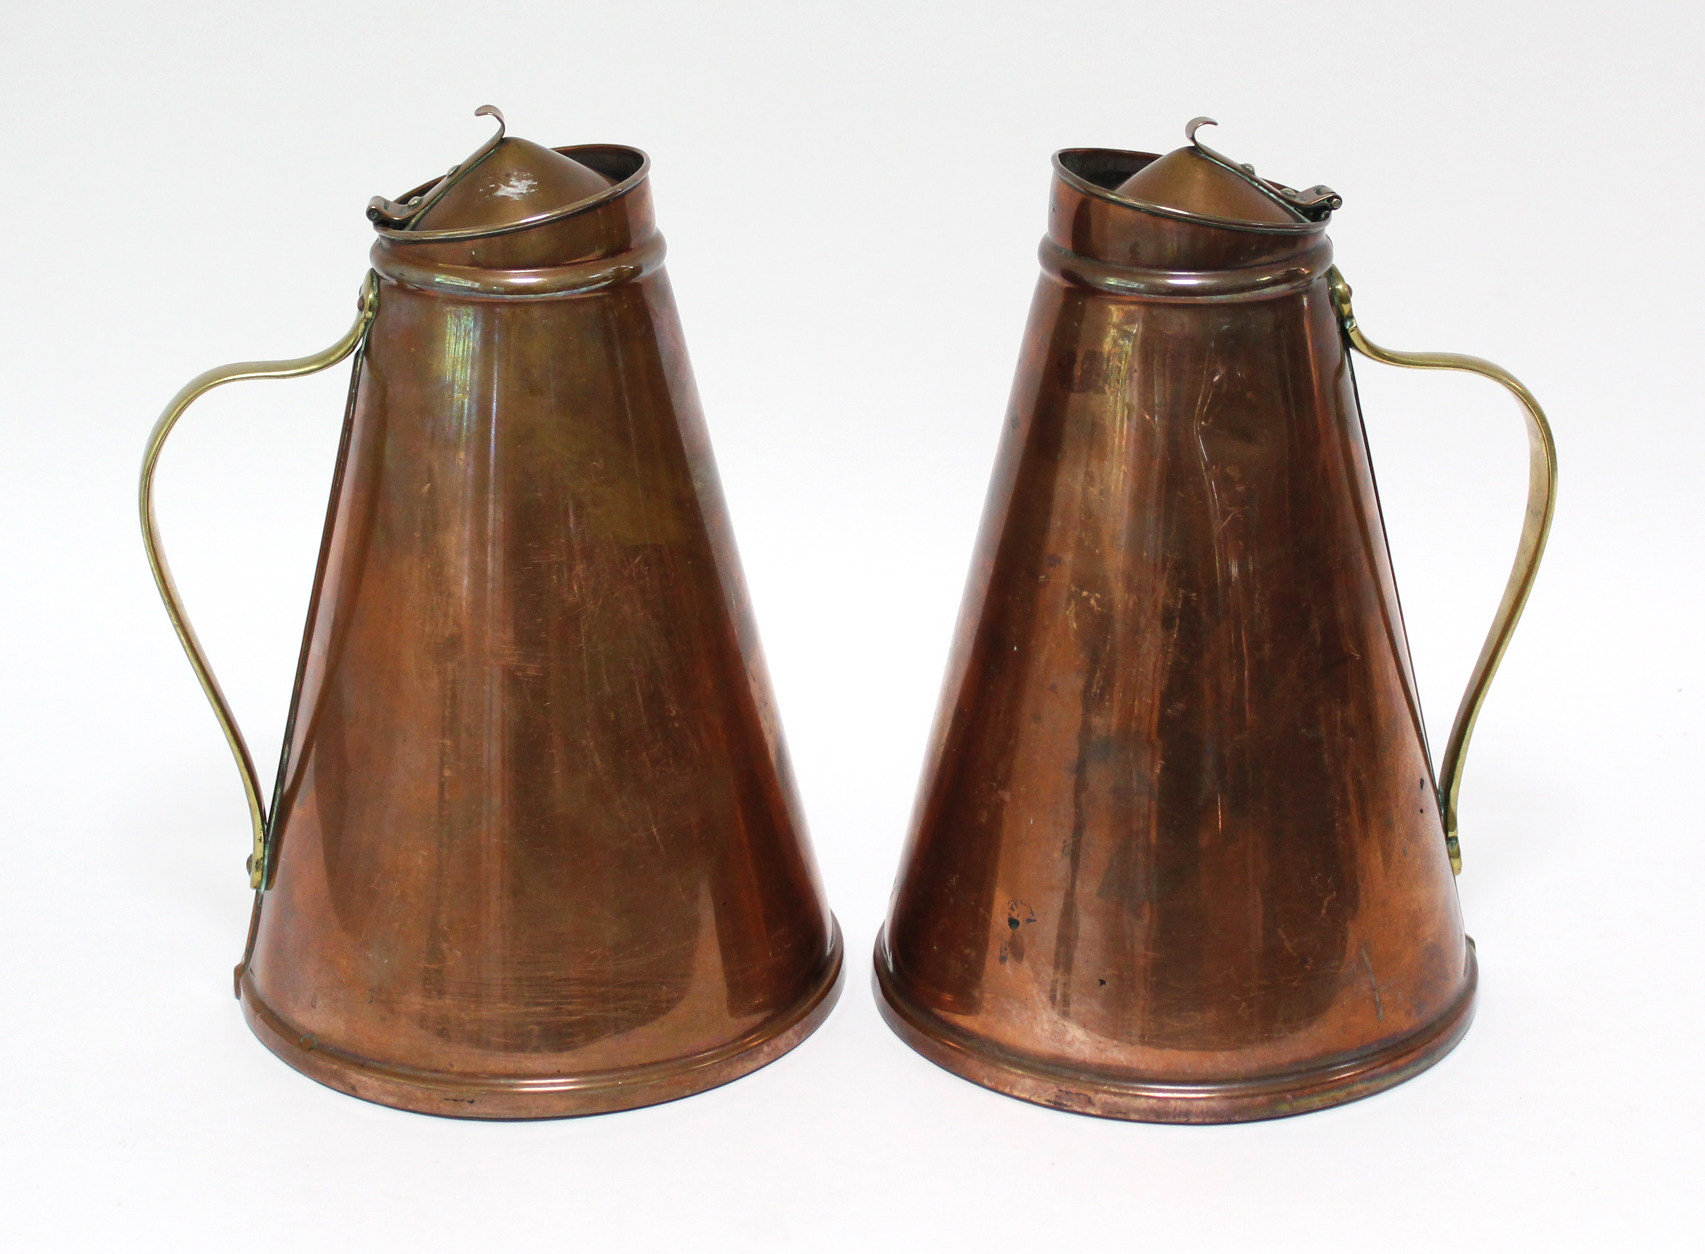 """Lot 163 - A pair of W. A. S. Benson Arts & Crafts copper """"Jacketed Jugs"""" of tapered cylindrical form, with"""